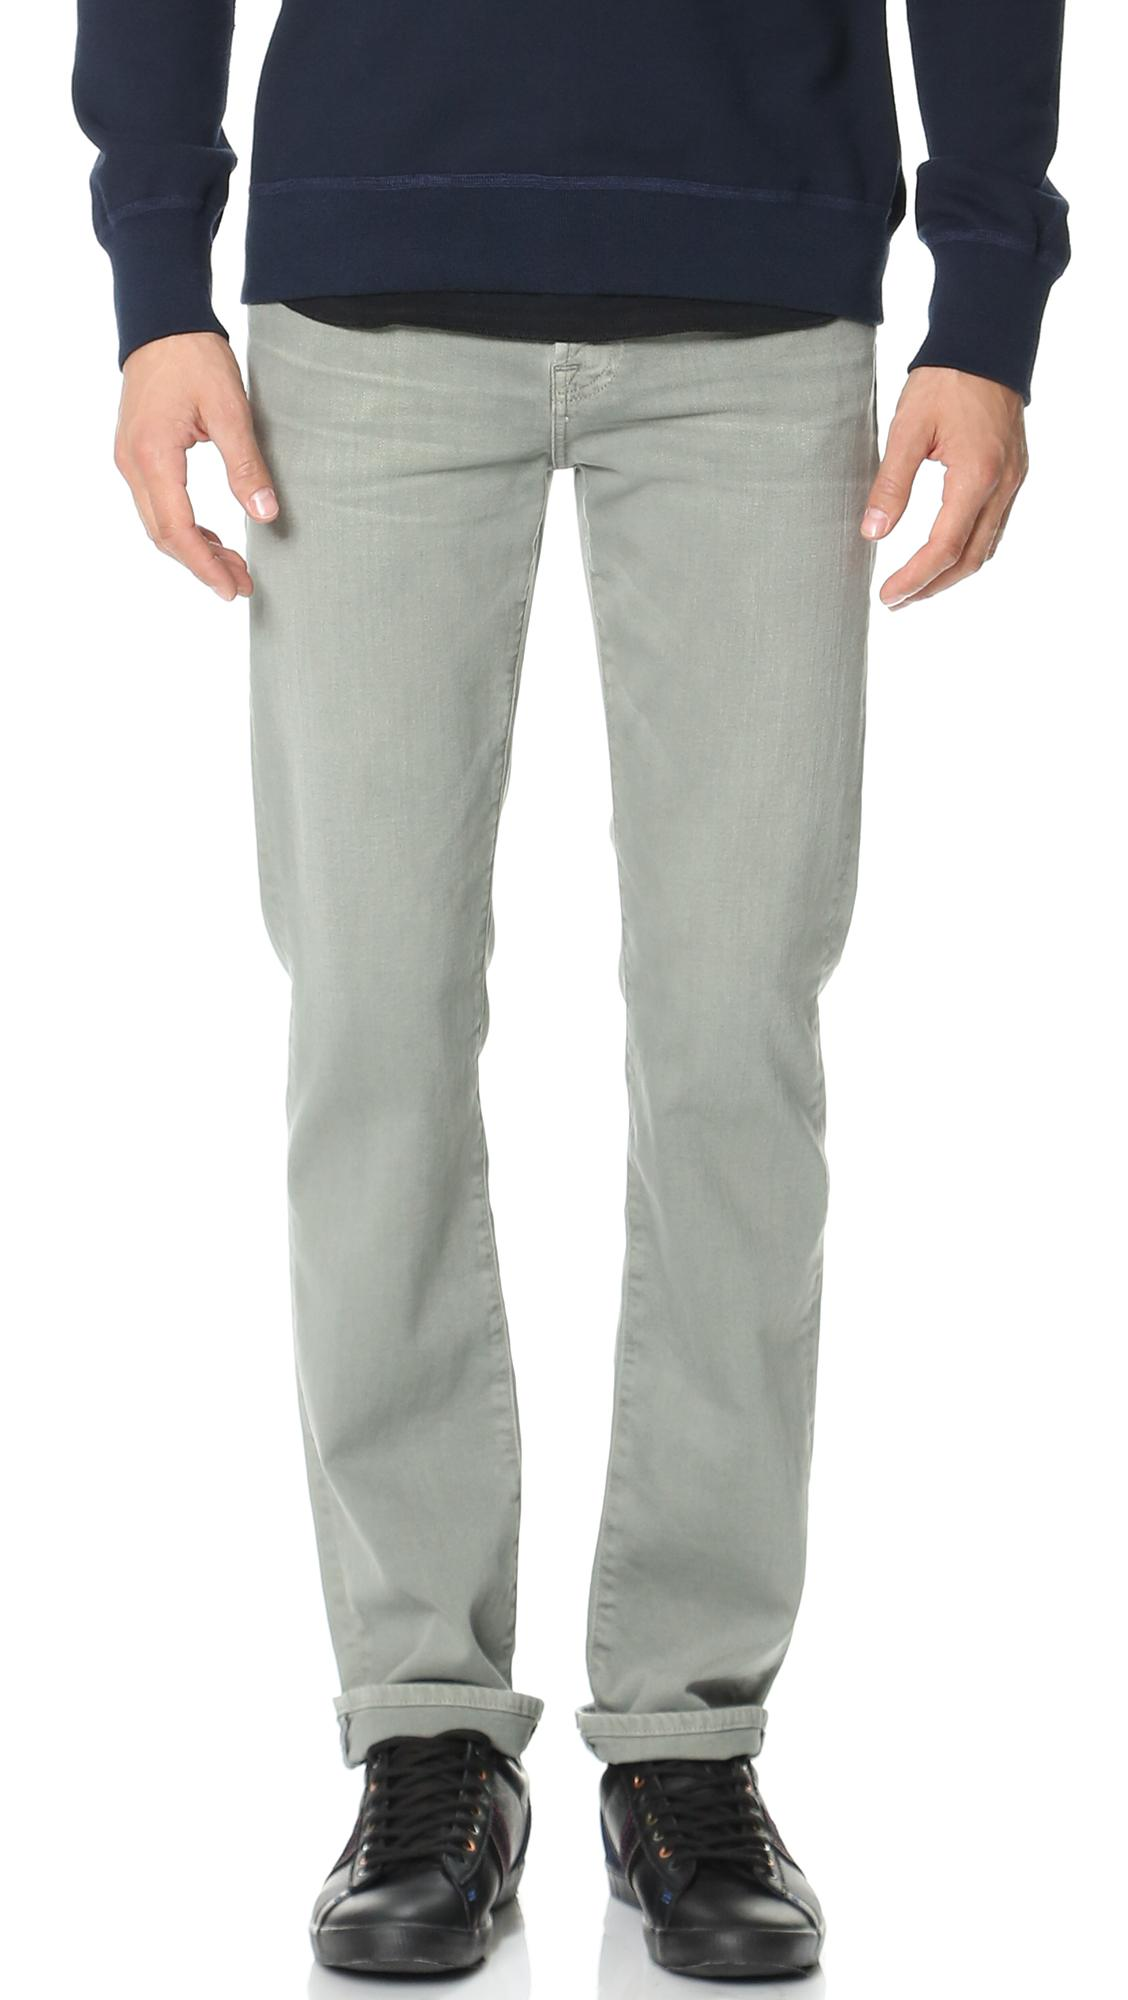 7 For All Mankind Luxe Performance Slimmy Jeans In Stone Wash Grey